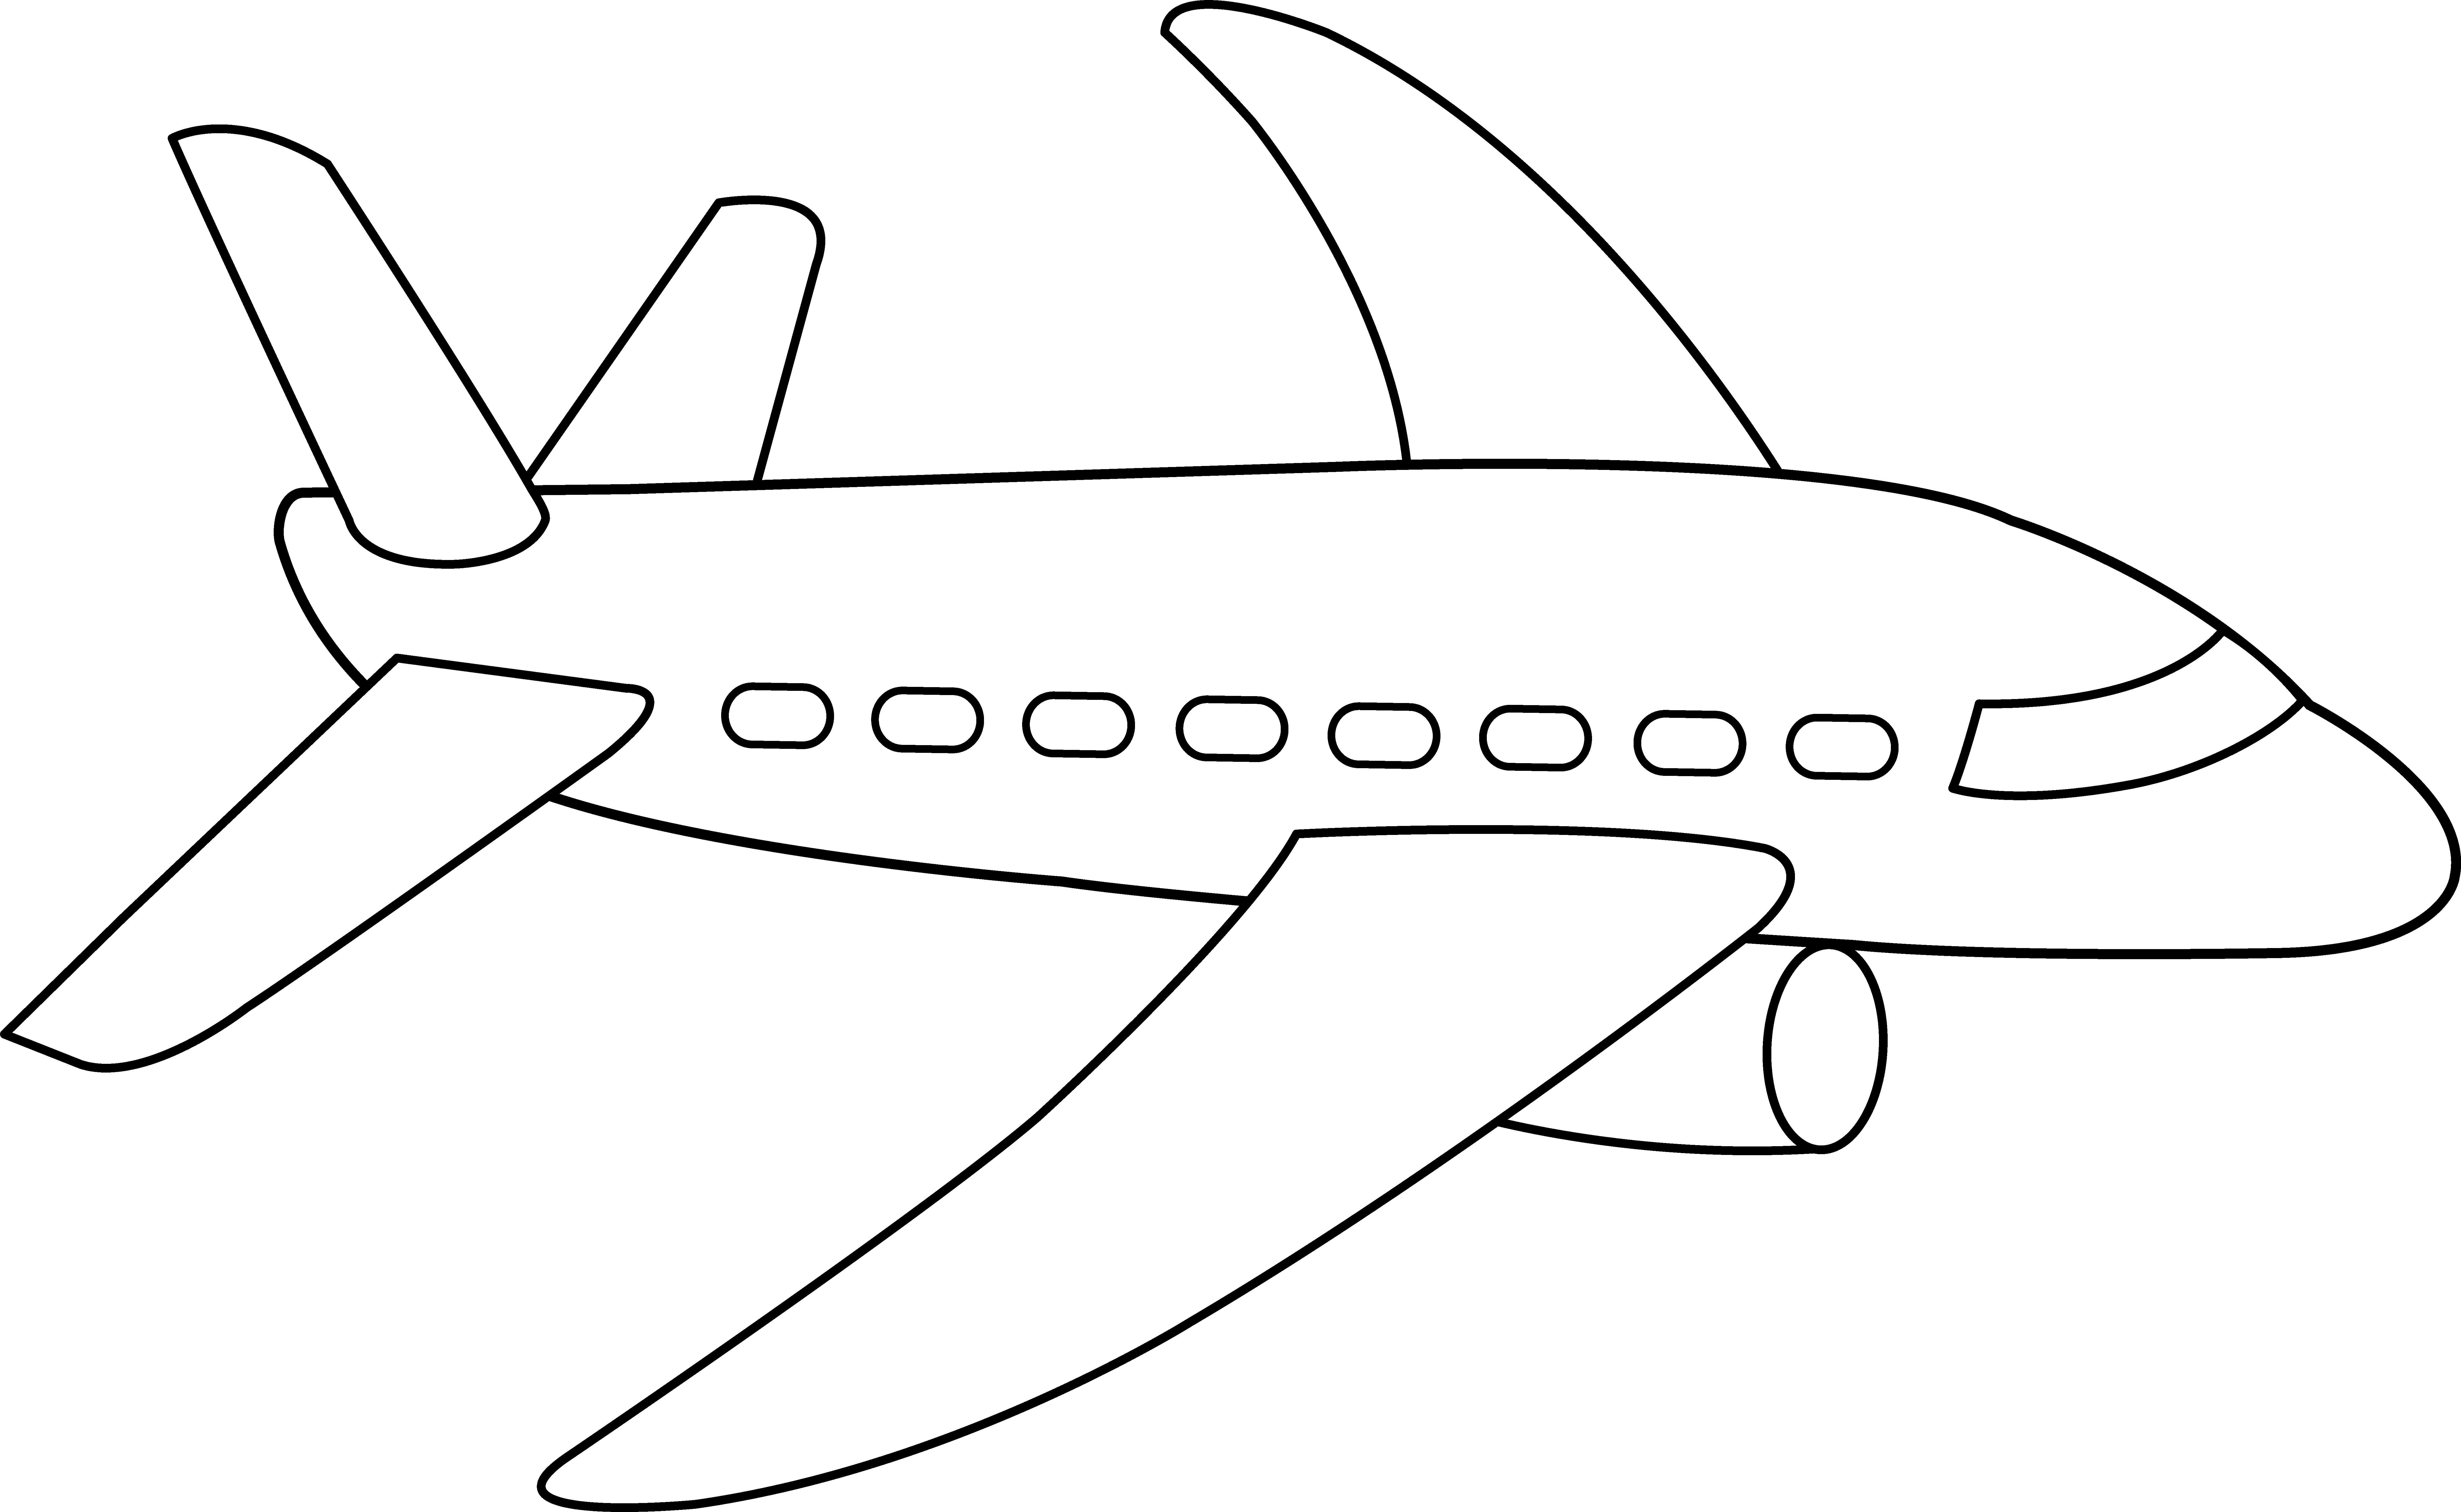 Drawing airplane printable. Coloring page free clip